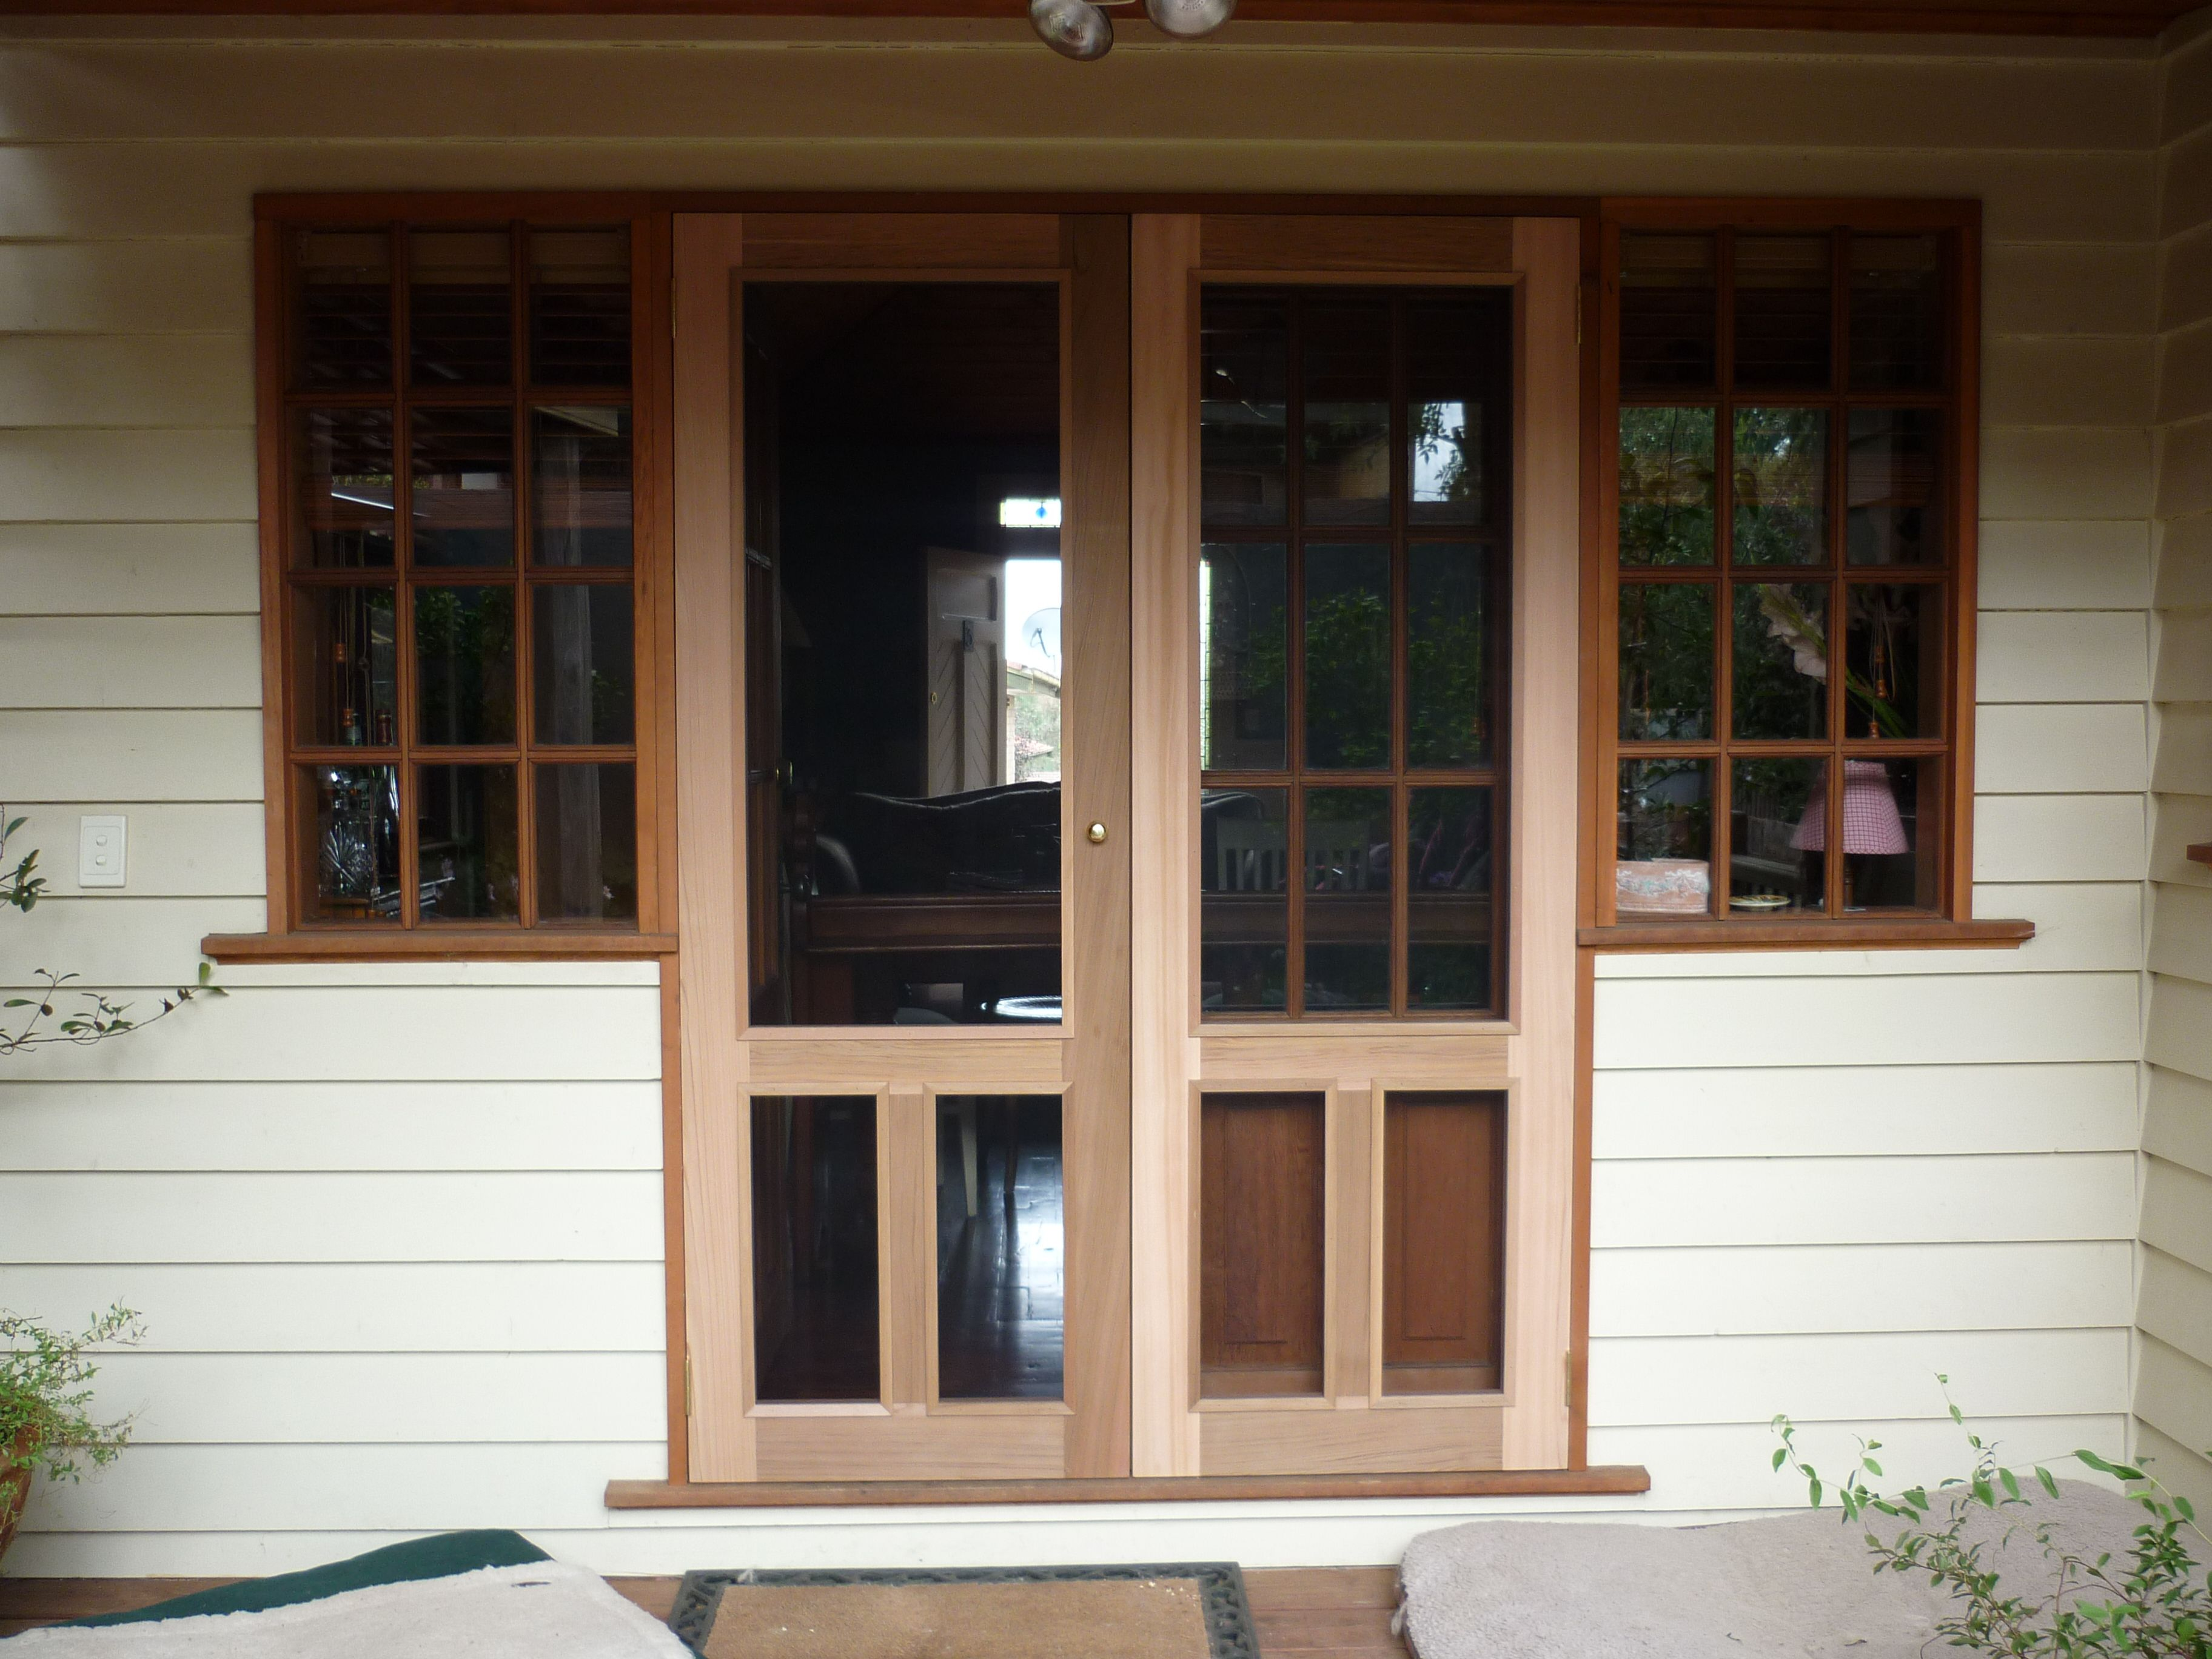 Fly screens for doors and windows - 17 Best Images About Fly Screen Door Designs On Pinterest Mansions The Chicken And Arches